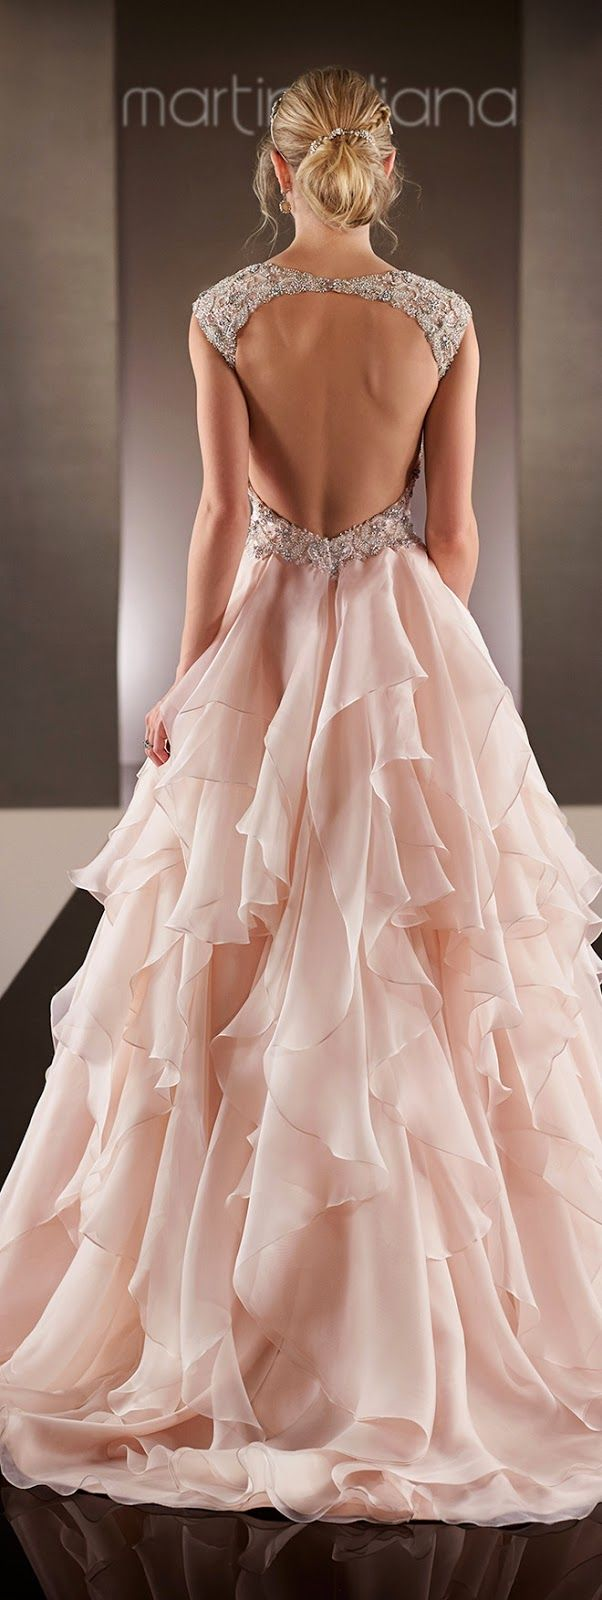 Martina Liana Spring 2015 Bridal Collection | Bella, Vestidos de ...